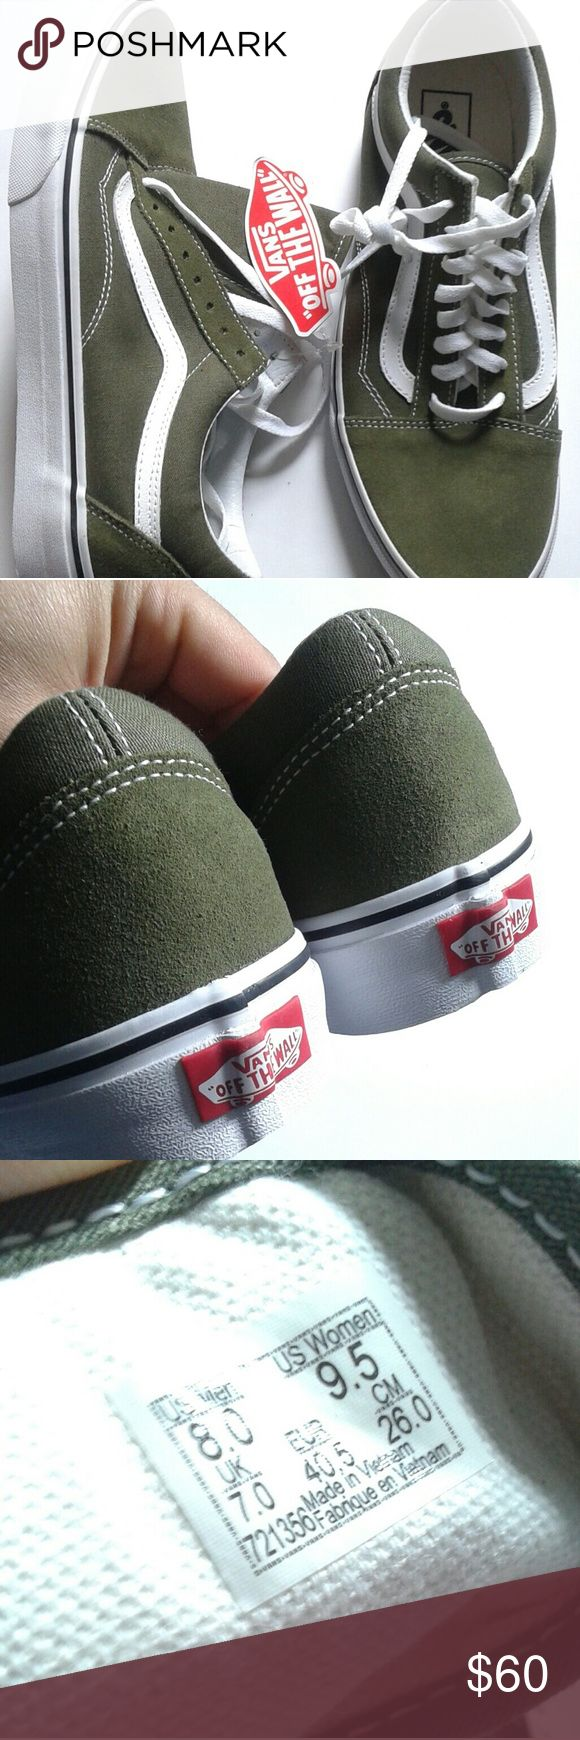 FIRM PRICE New Green Suede Vans Old Skool Sneakers Hi, for sale are a new pair of green old skool sneakers by Vans in a women's size 9.5. Vans are Unisex. Vans Shoes Sneakers